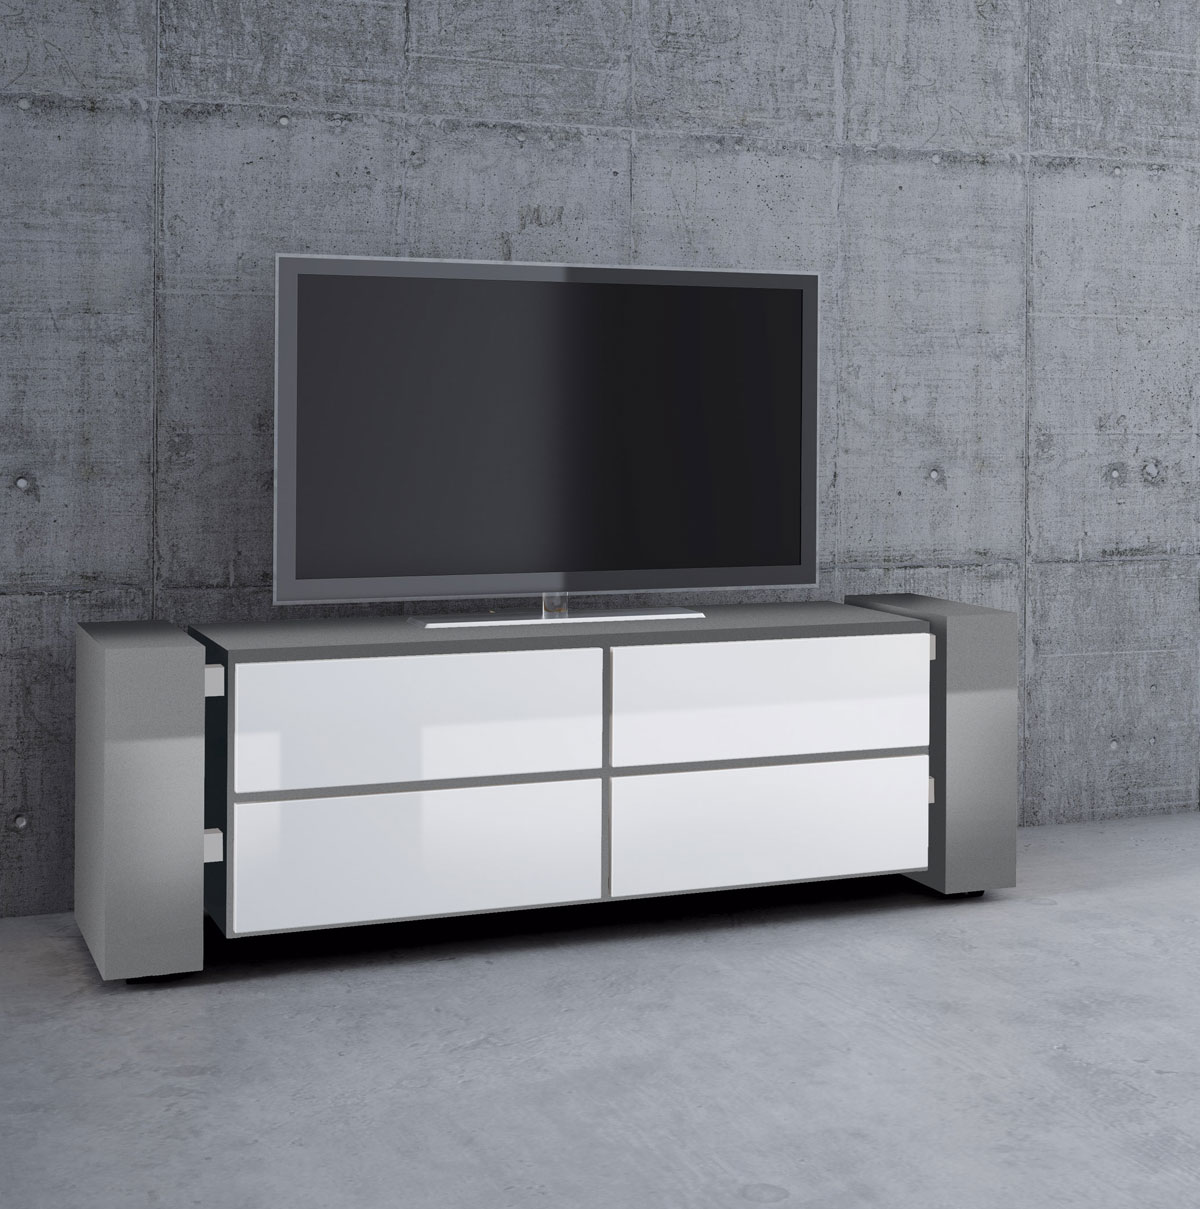 schnepel hifi archive tv m bel und hifi m bel guide. Black Bedroom Furniture Sets. Home Design Ideas